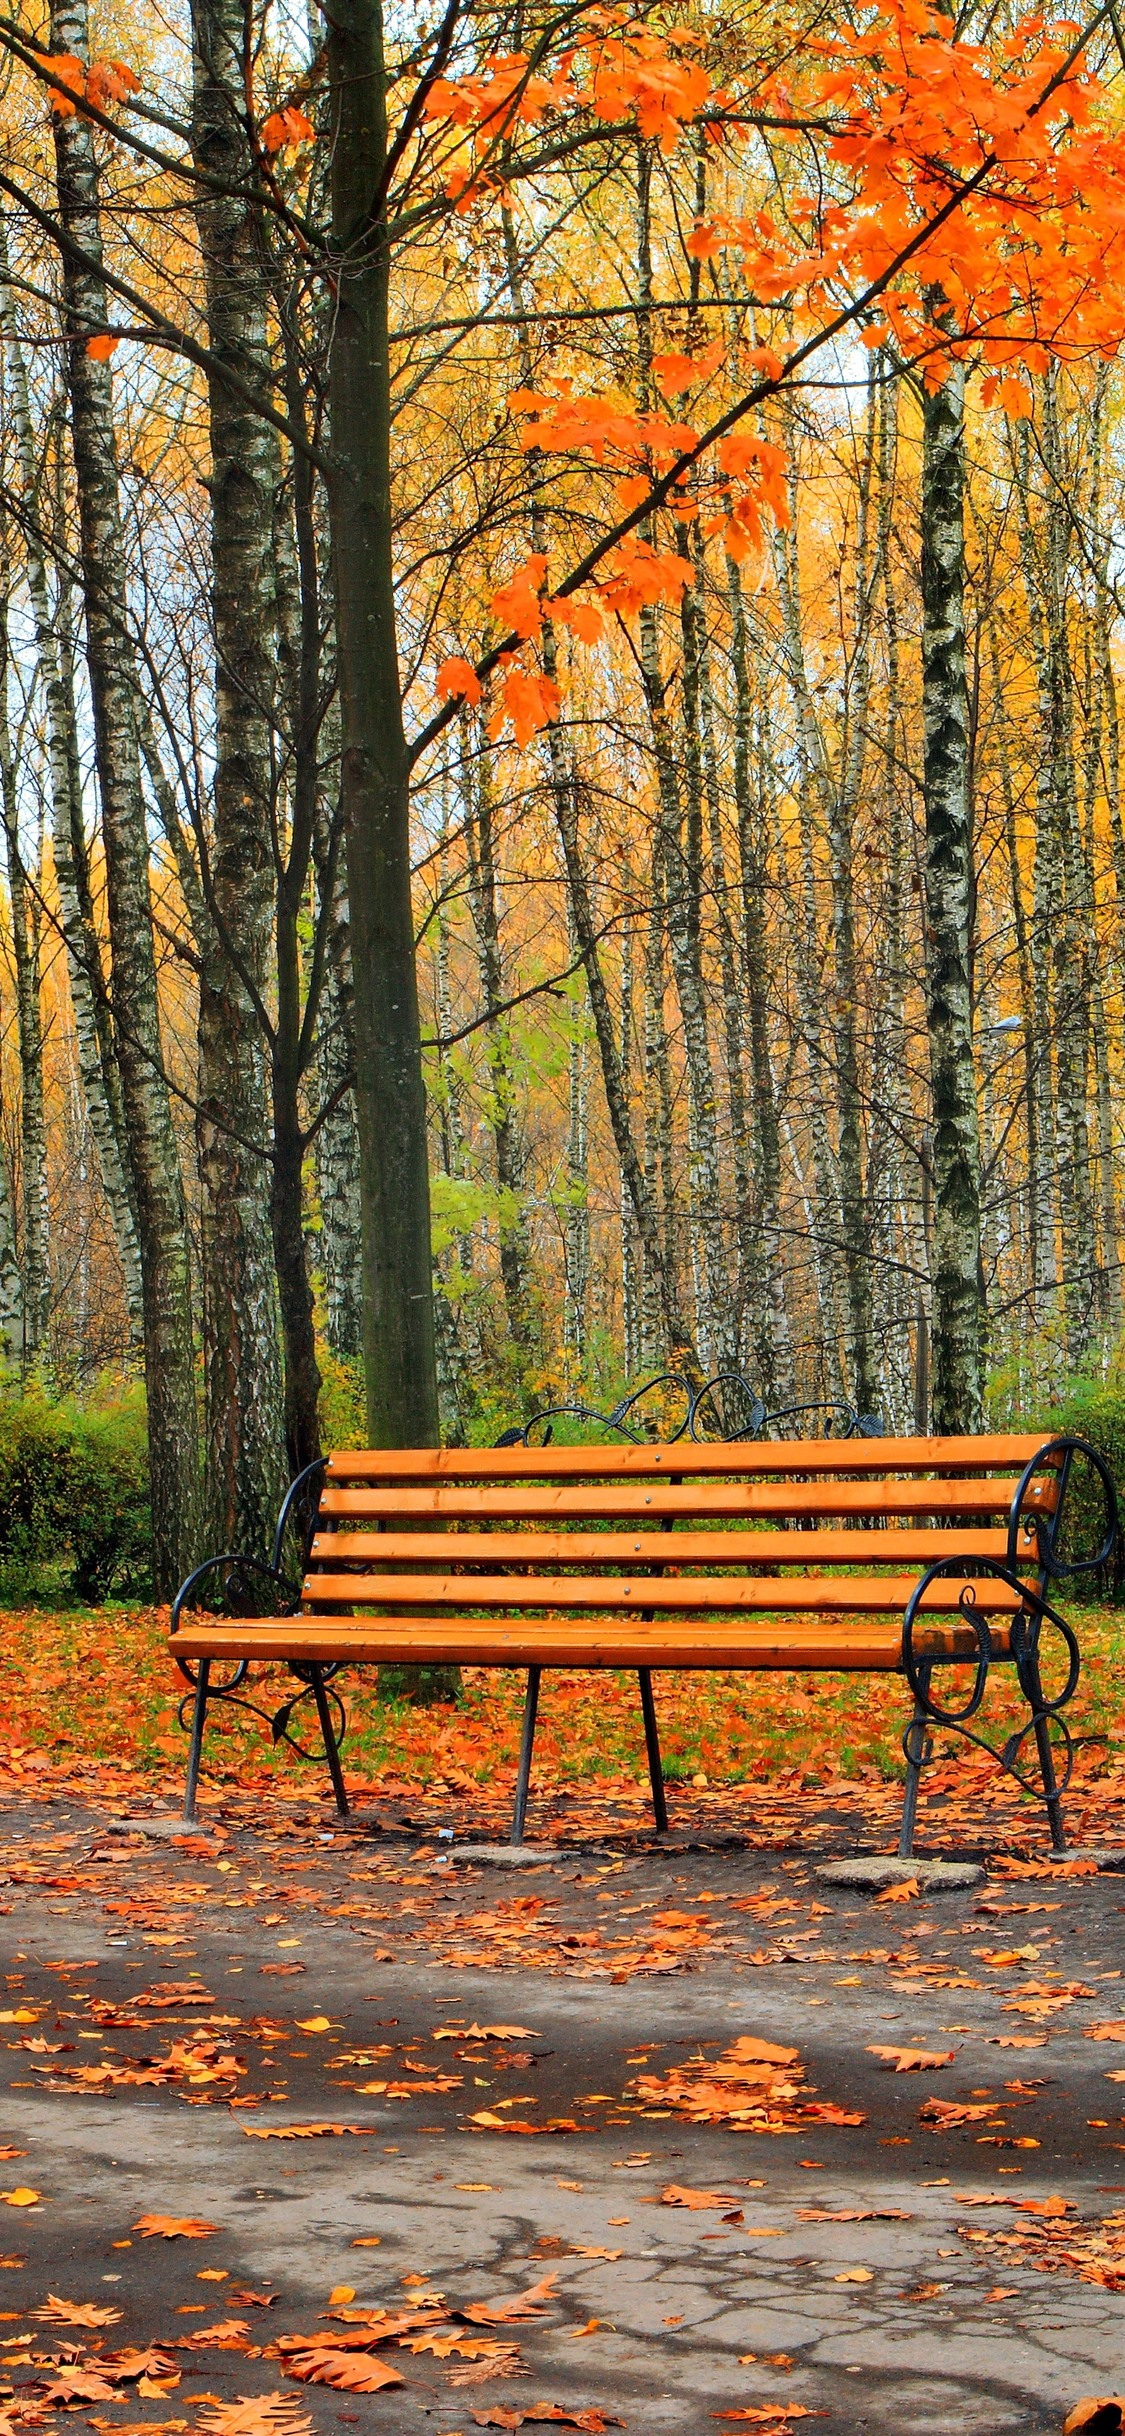 Park Trees Yellow Leaves Bench Road Autumn 1242x2688